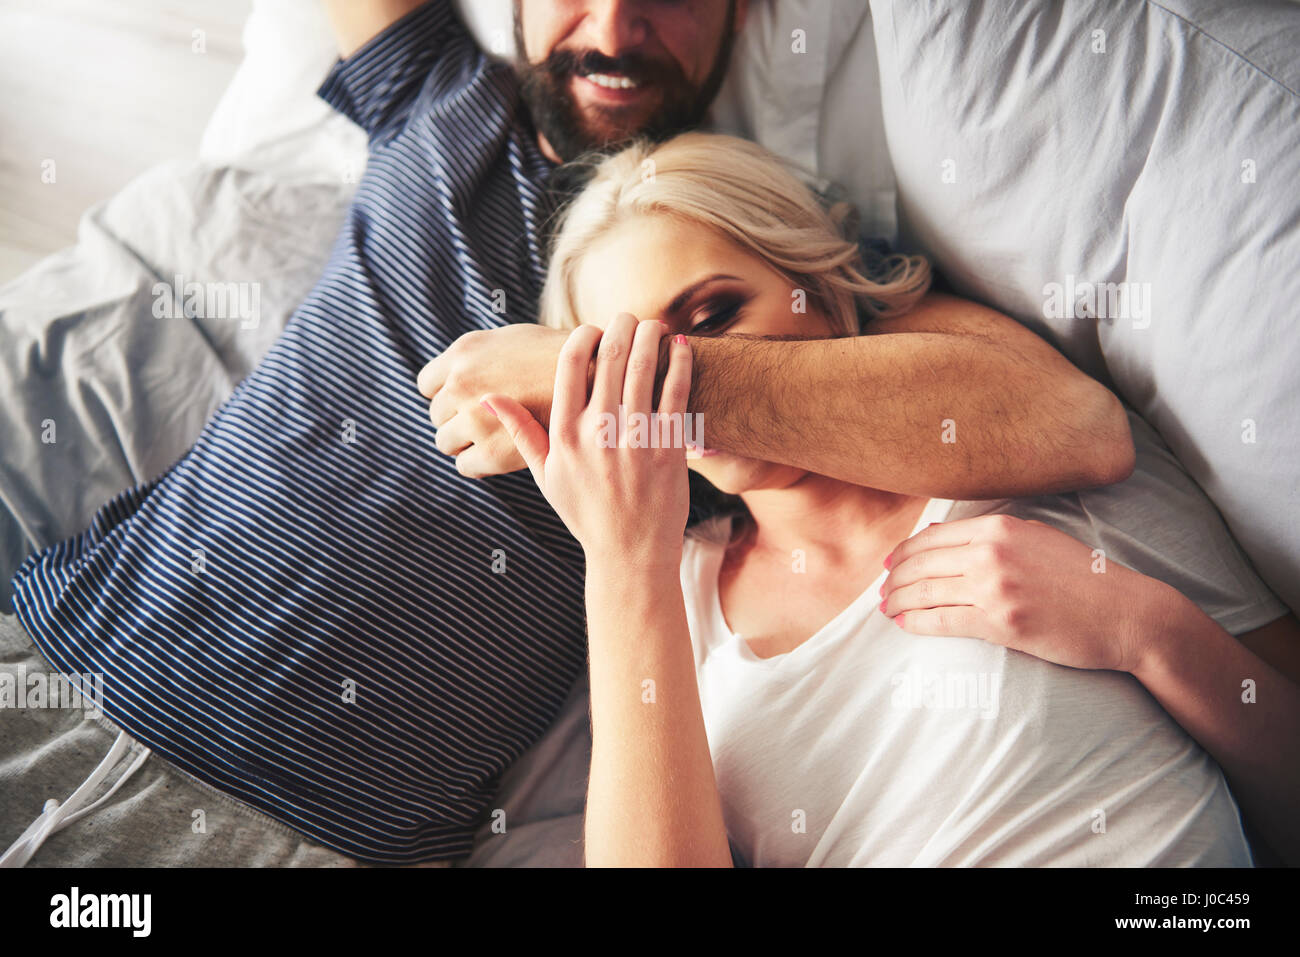 Couple relaxing on bed, fooling around - Stock Image